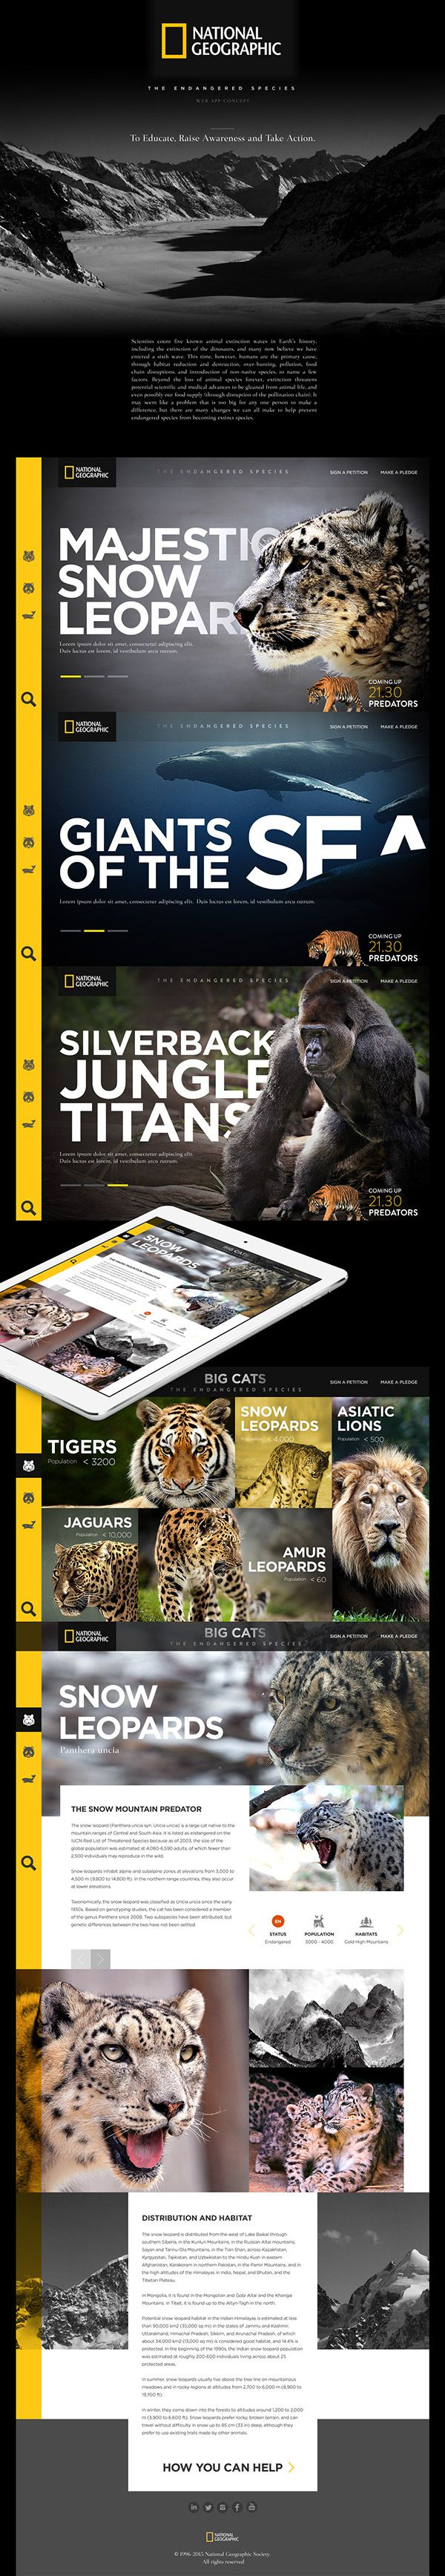 National Geographic - The Endangered Species (Concept) on Behance